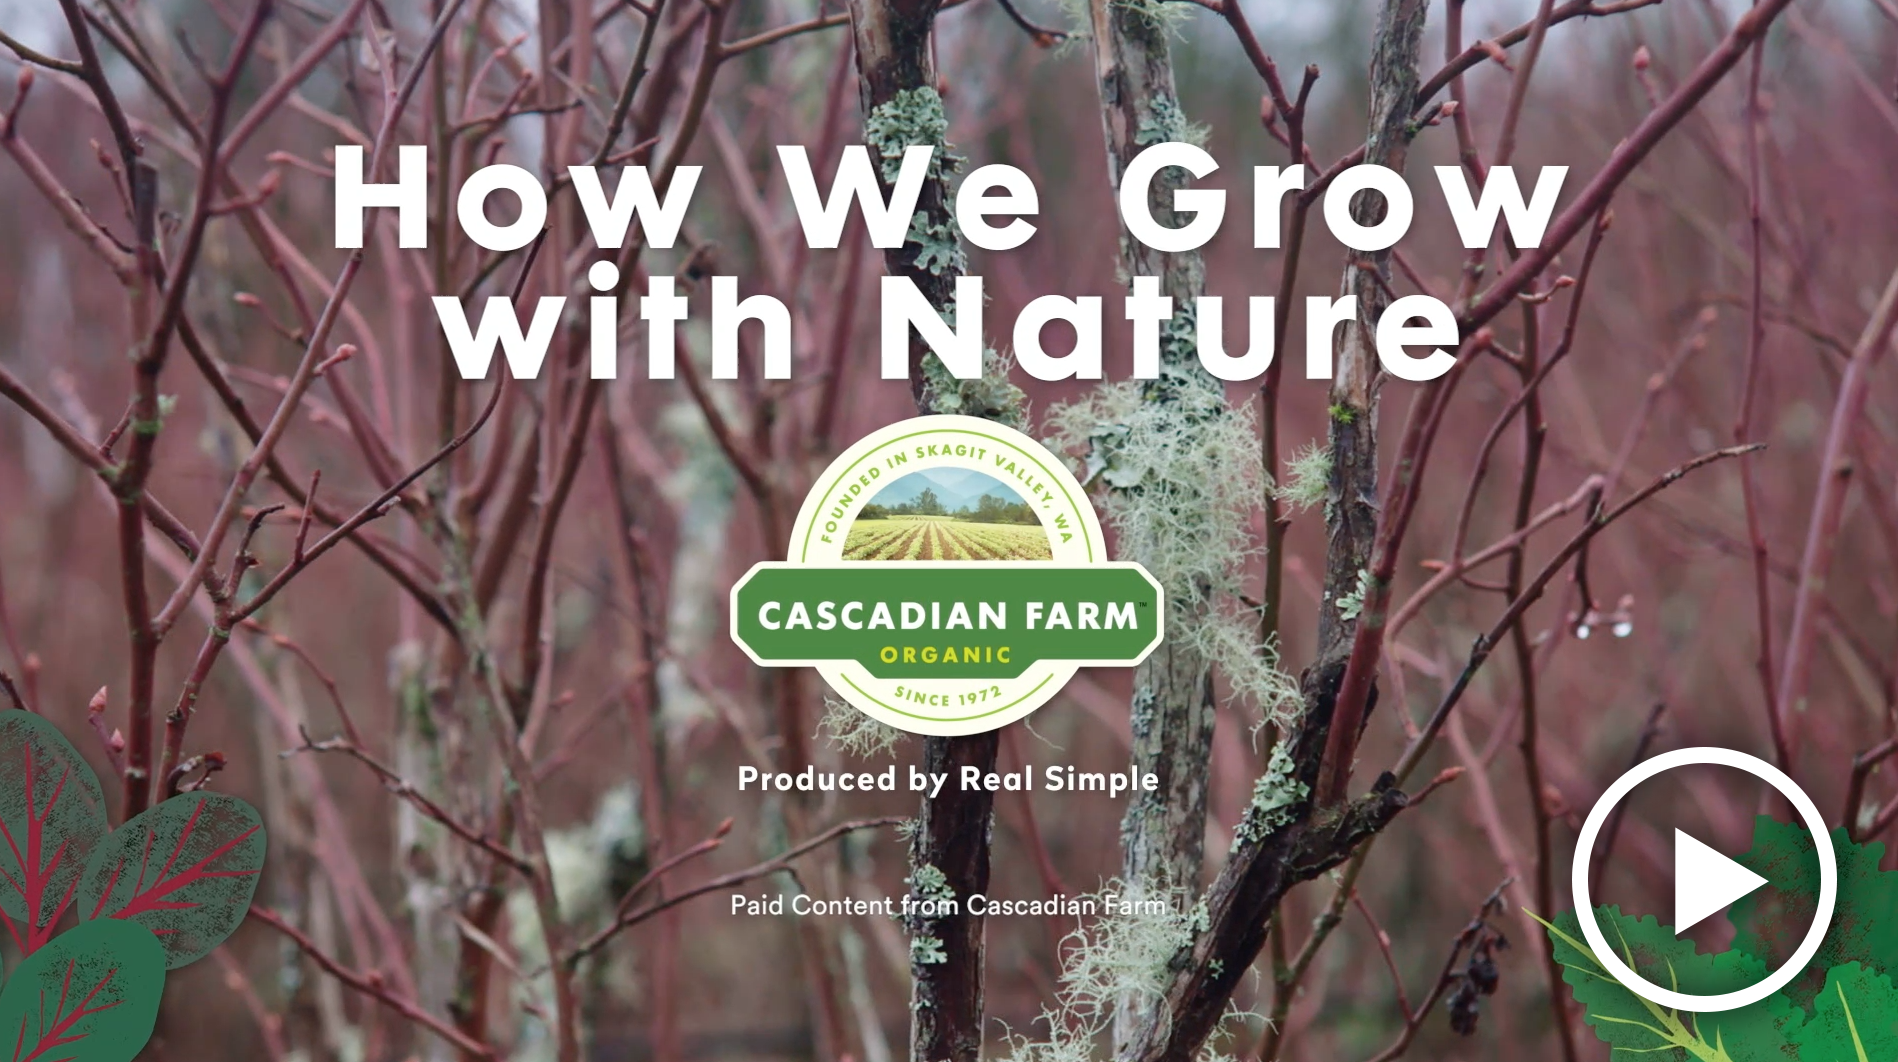 The Magic of Organic: How We Grow with Nature